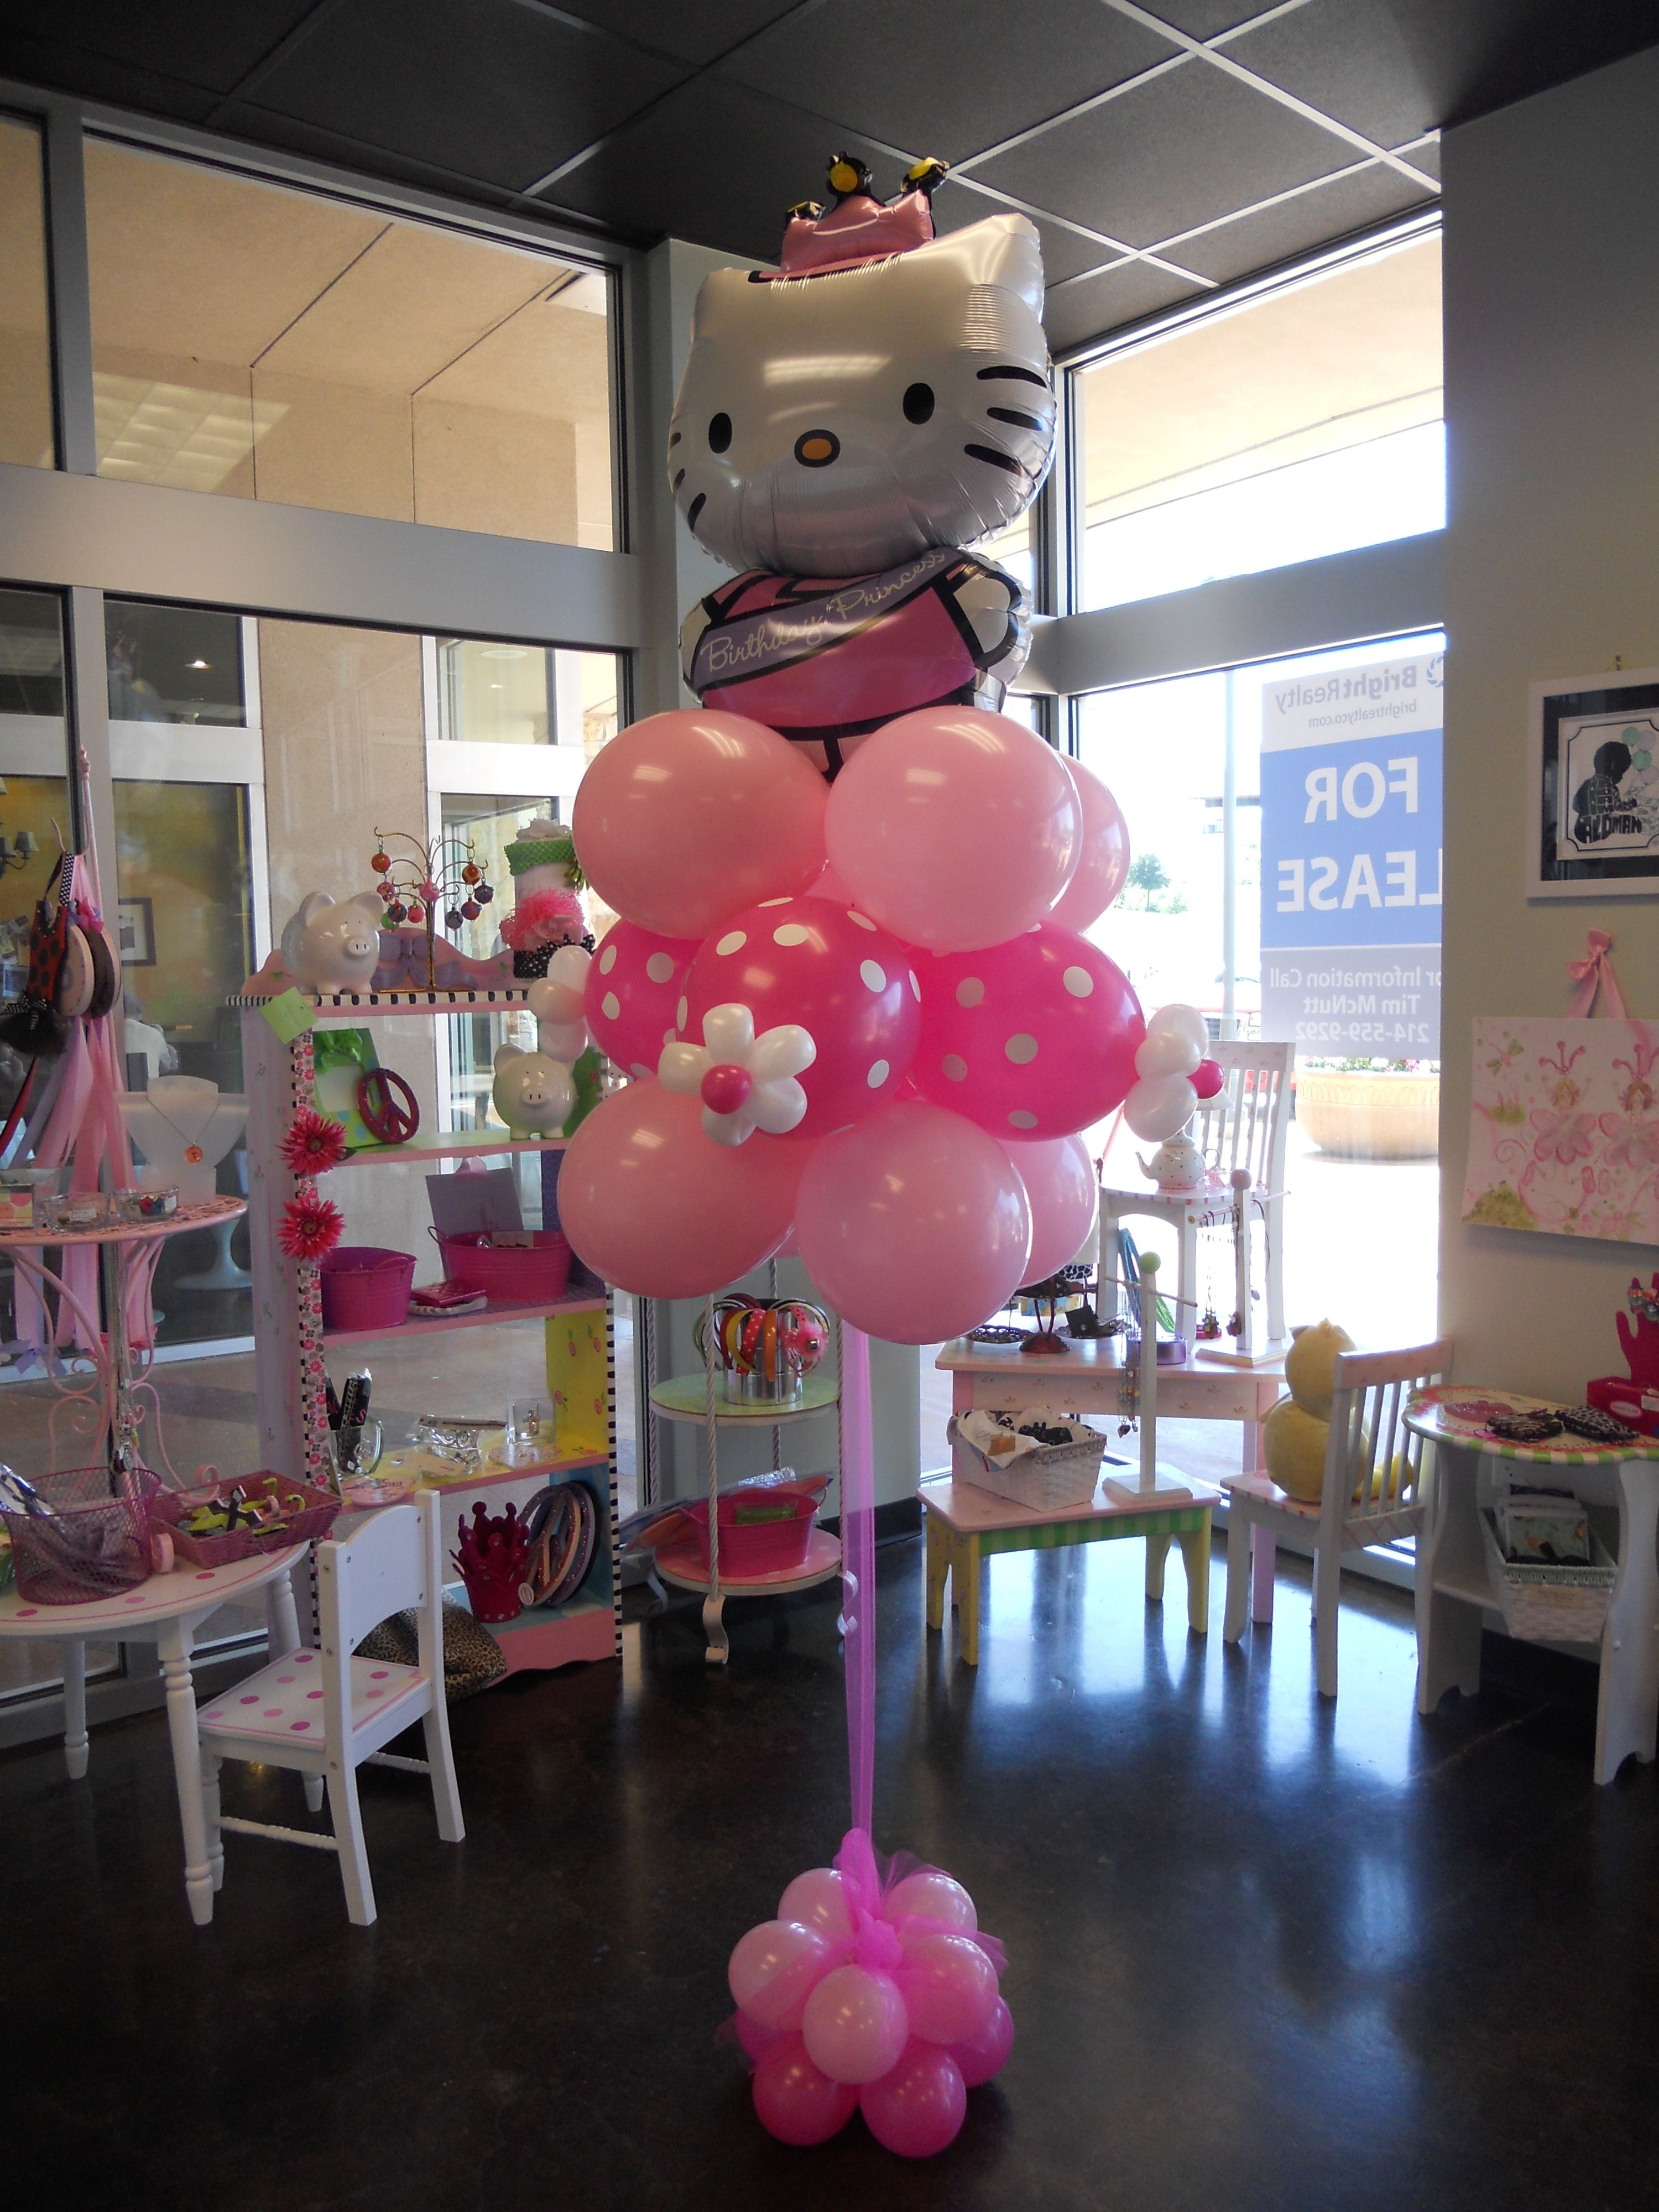 Hello Kitty Baby Shower Decorations : hello, kitty, shower, decorations, Floating, Column, Hello, Kitty, Theme, Party,, Birthday, Party